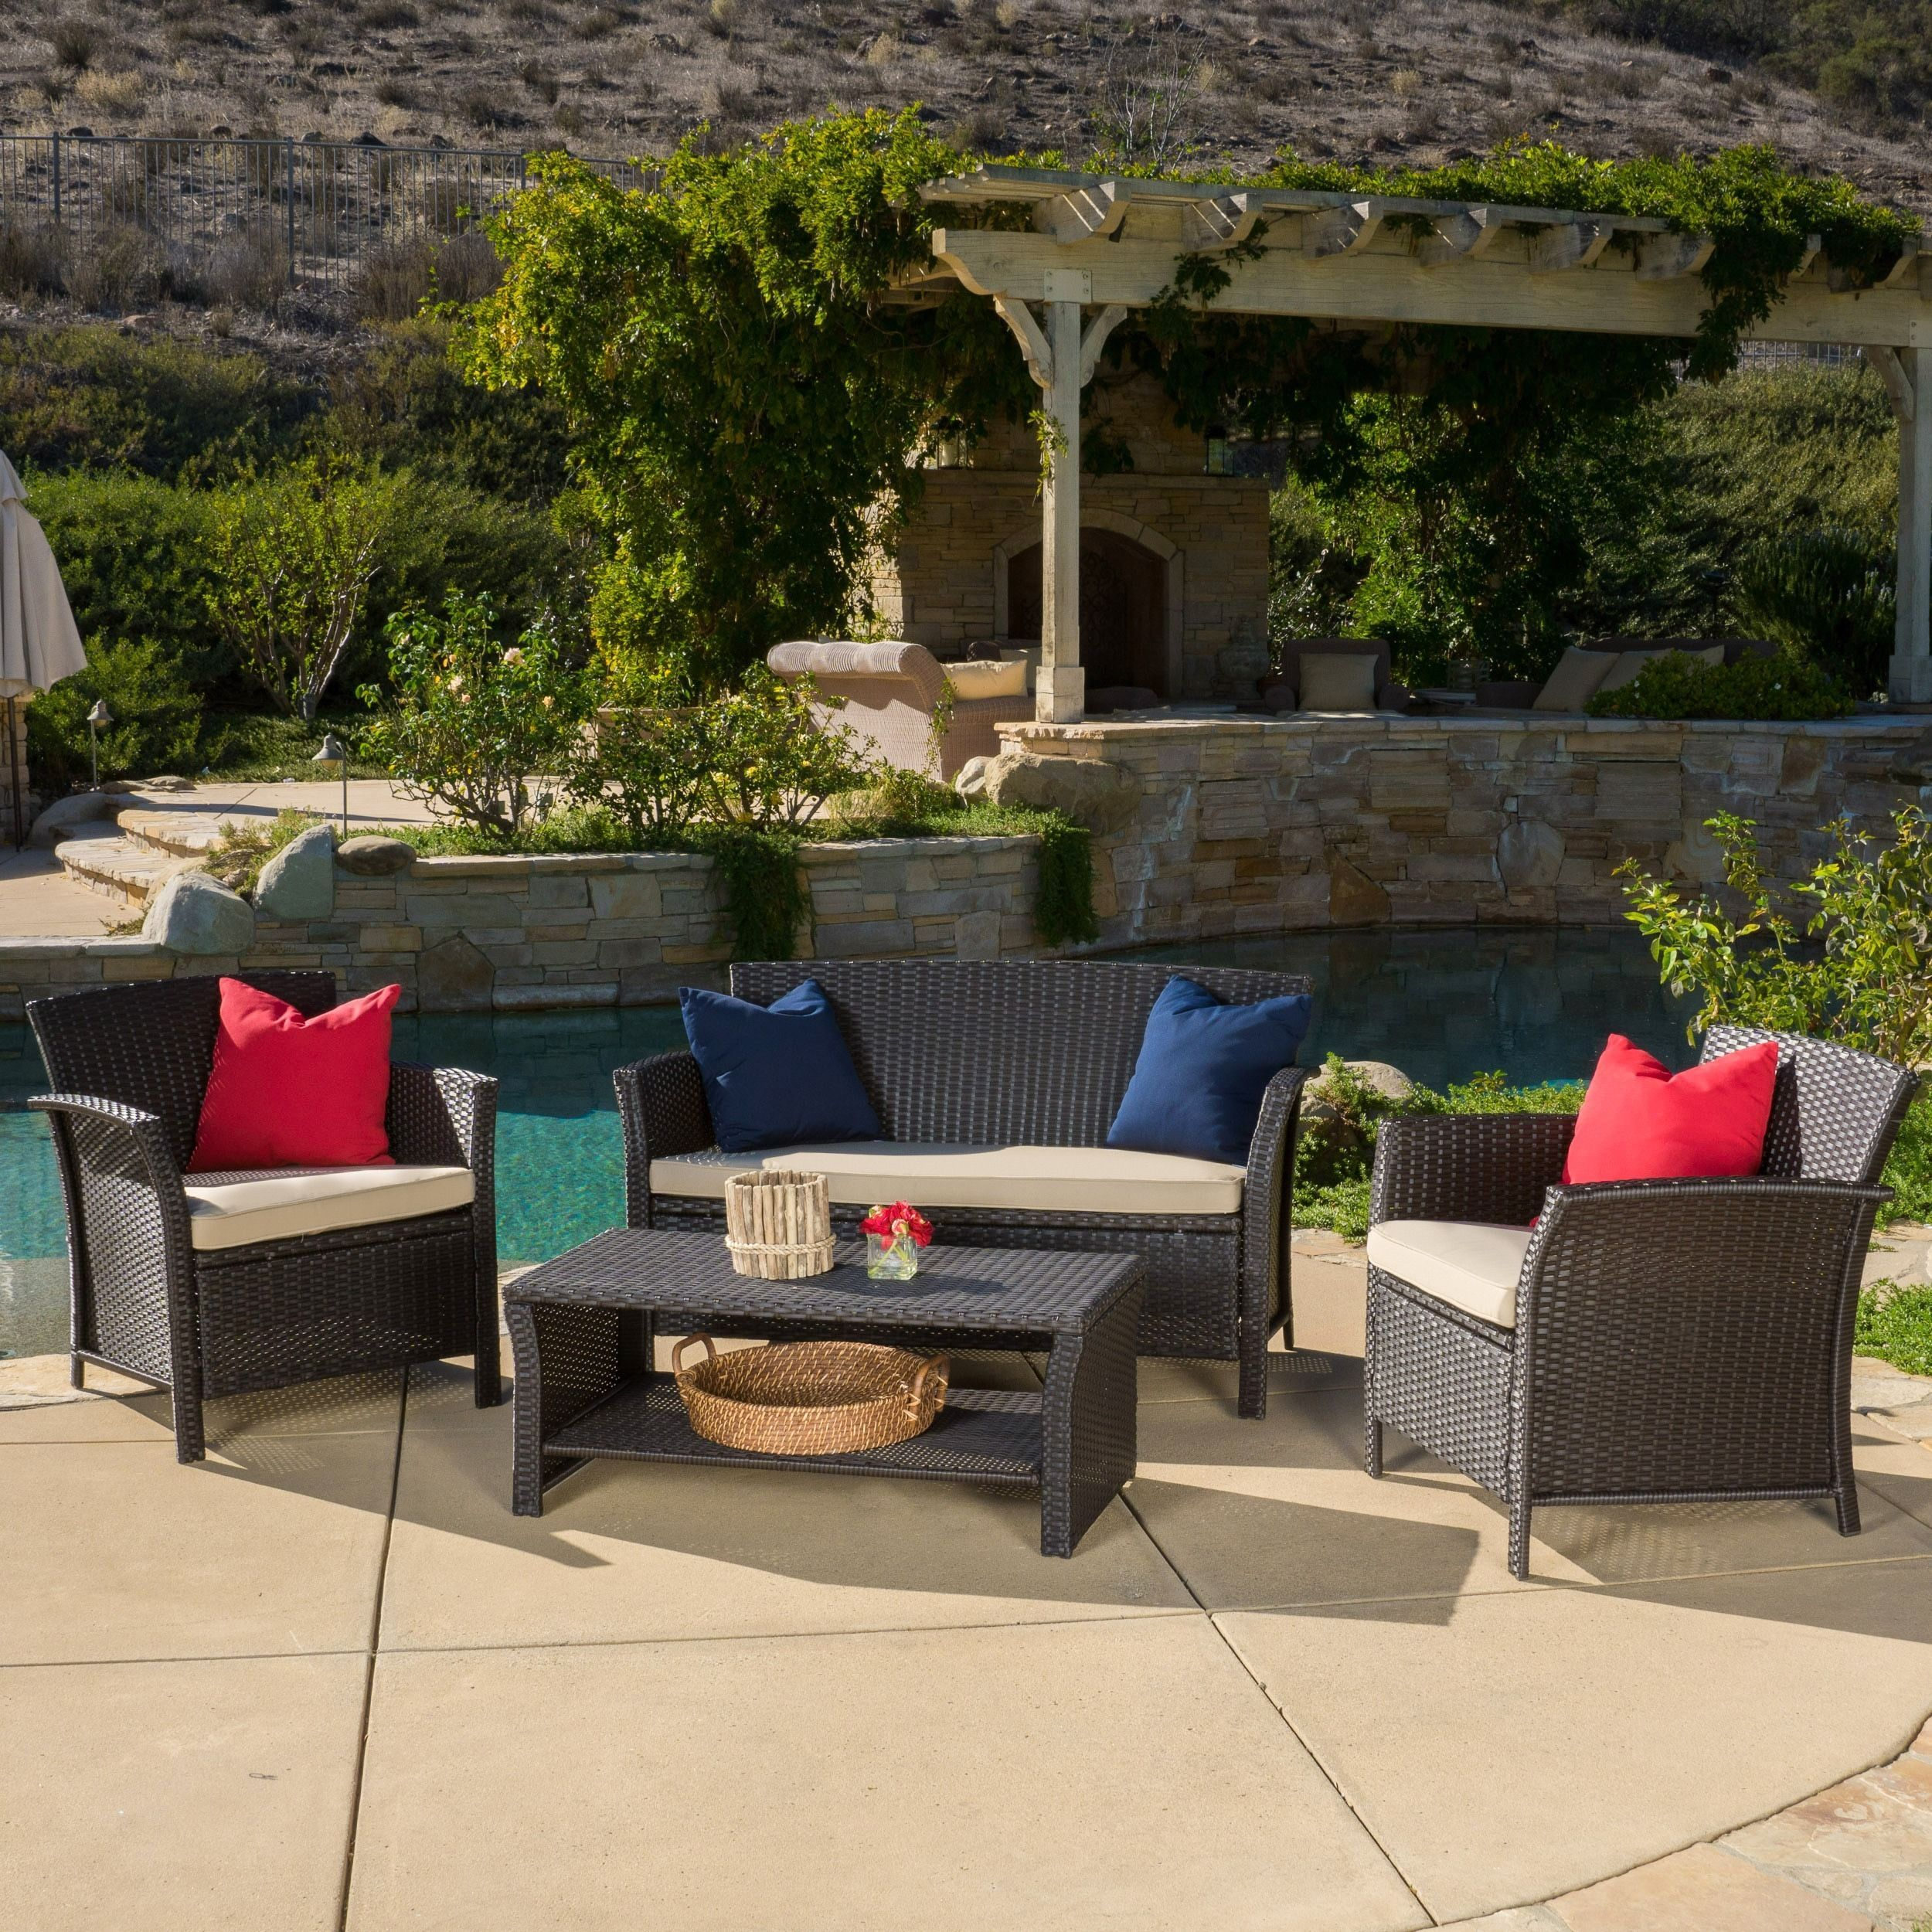 High Quality Patio Furniture: Free Shipping On Orders Over $45! Shop The Best Selection  Of Outdoor